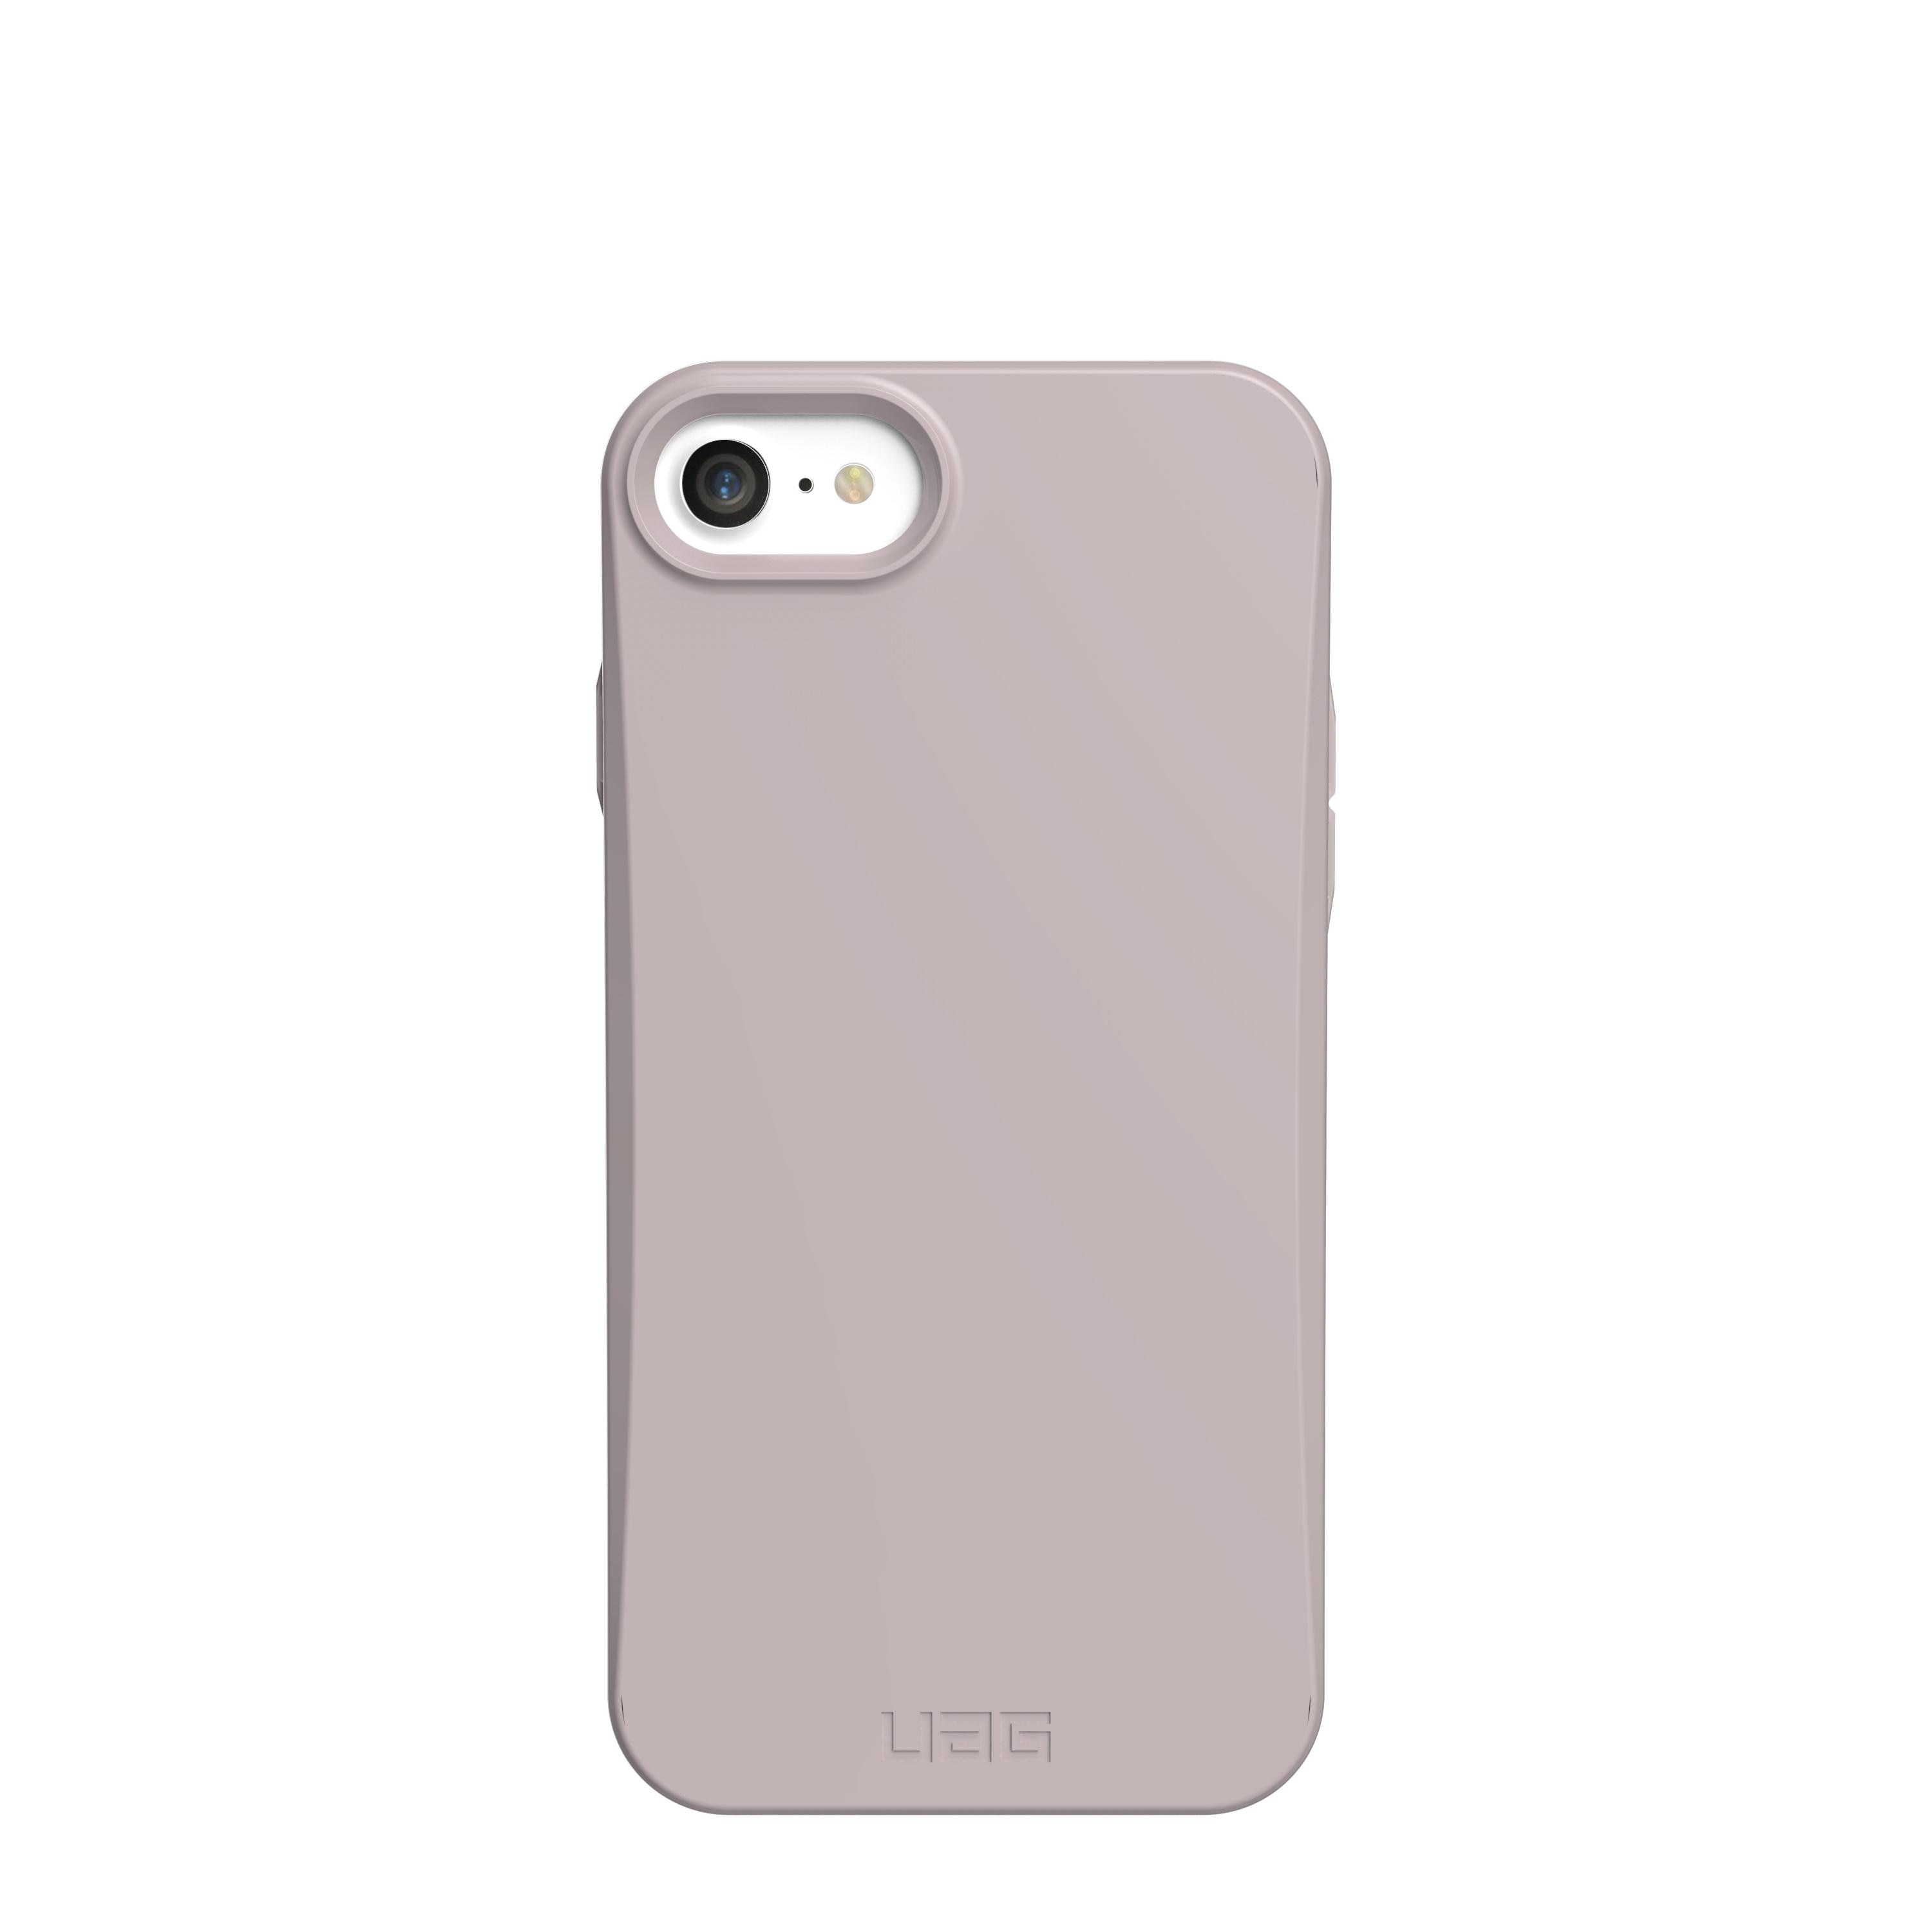 Outback Biodegradable Case iPhone 7/8/SE 2020 Lilac